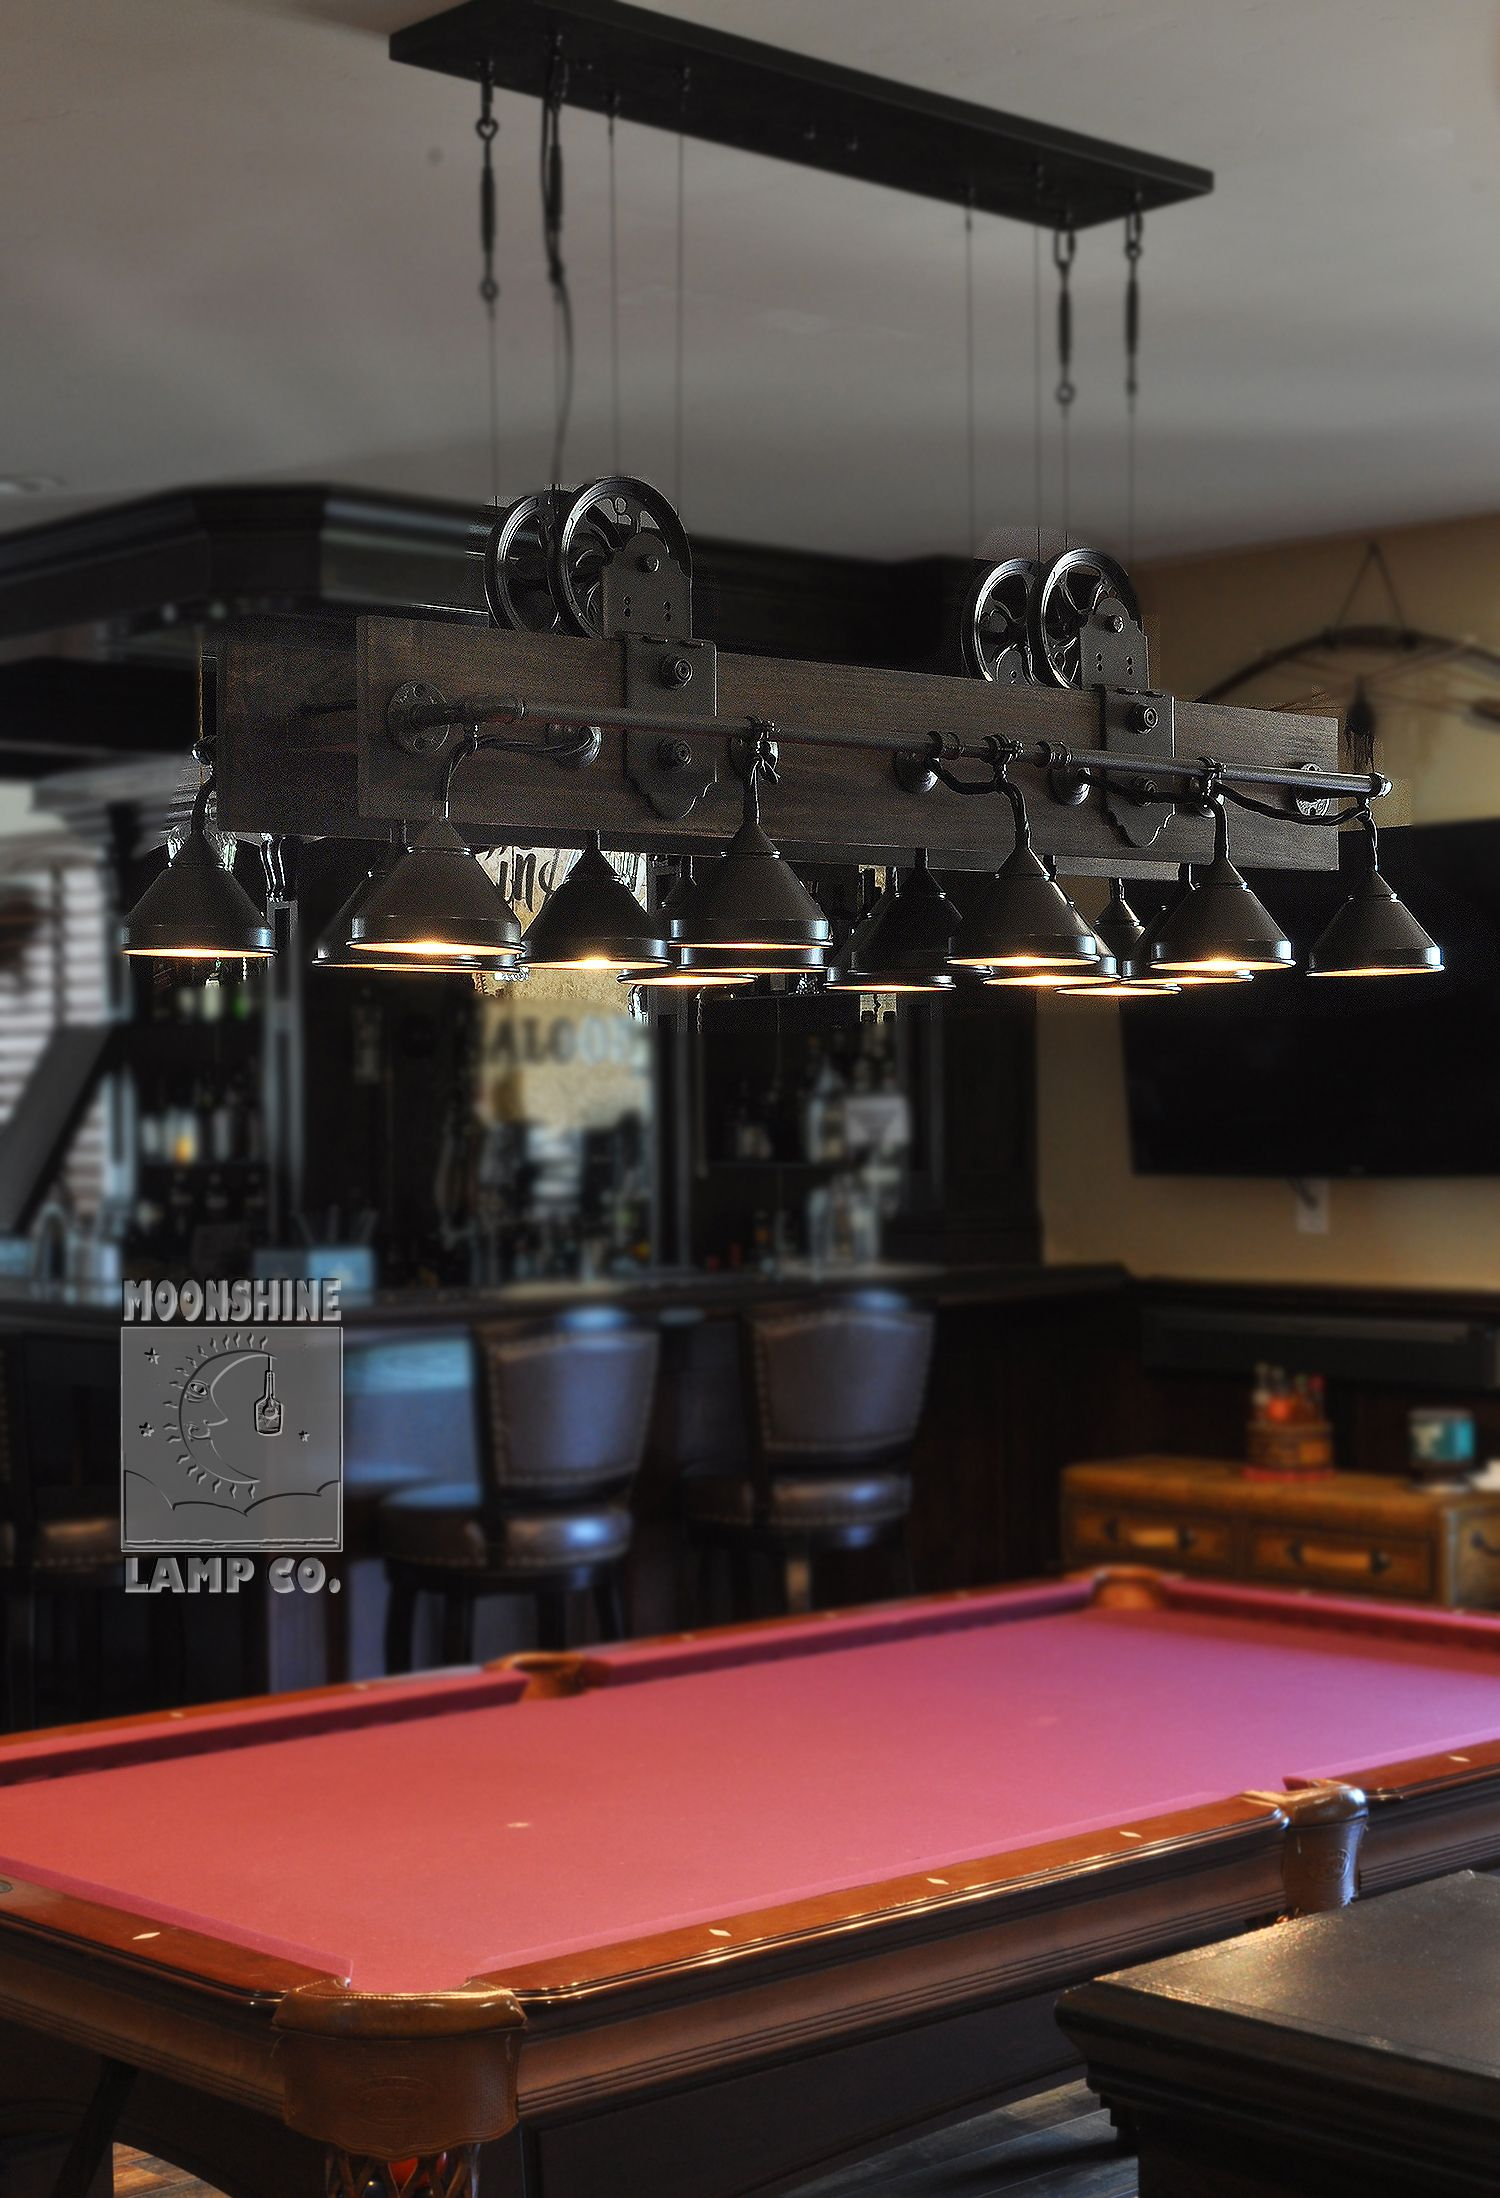 Lots of detail in this amazing pool table light made out of steel lots of detail in this amazing pool table light made out of steel funnels water pipe and pulley wheels definitely one of our more intense custom jobs aloadofball